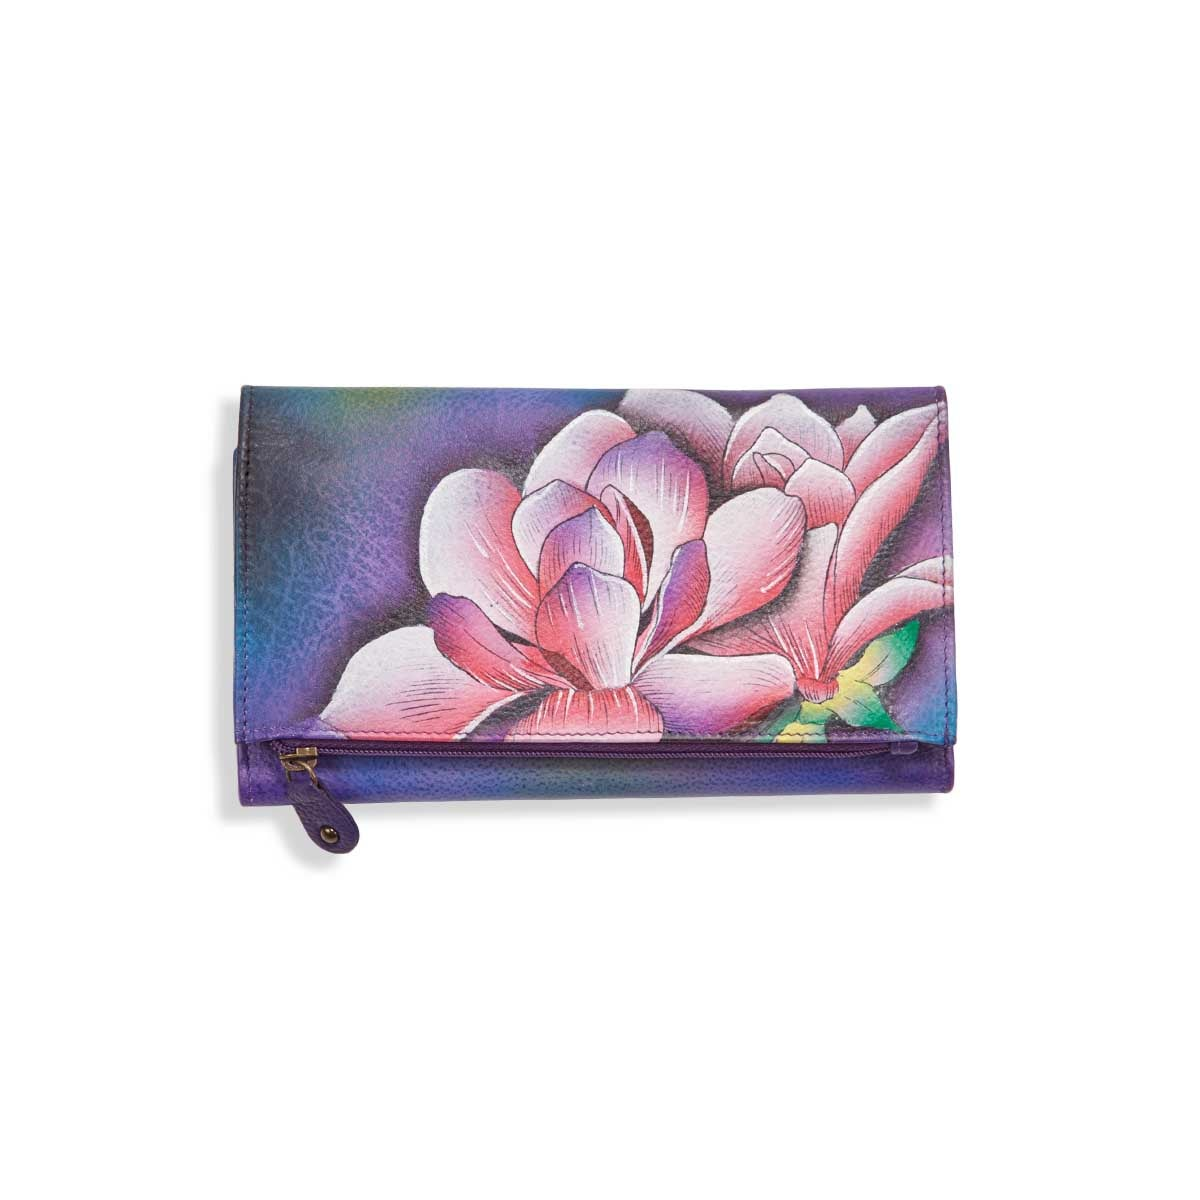 Painted lthr Magnolia Melody wallet